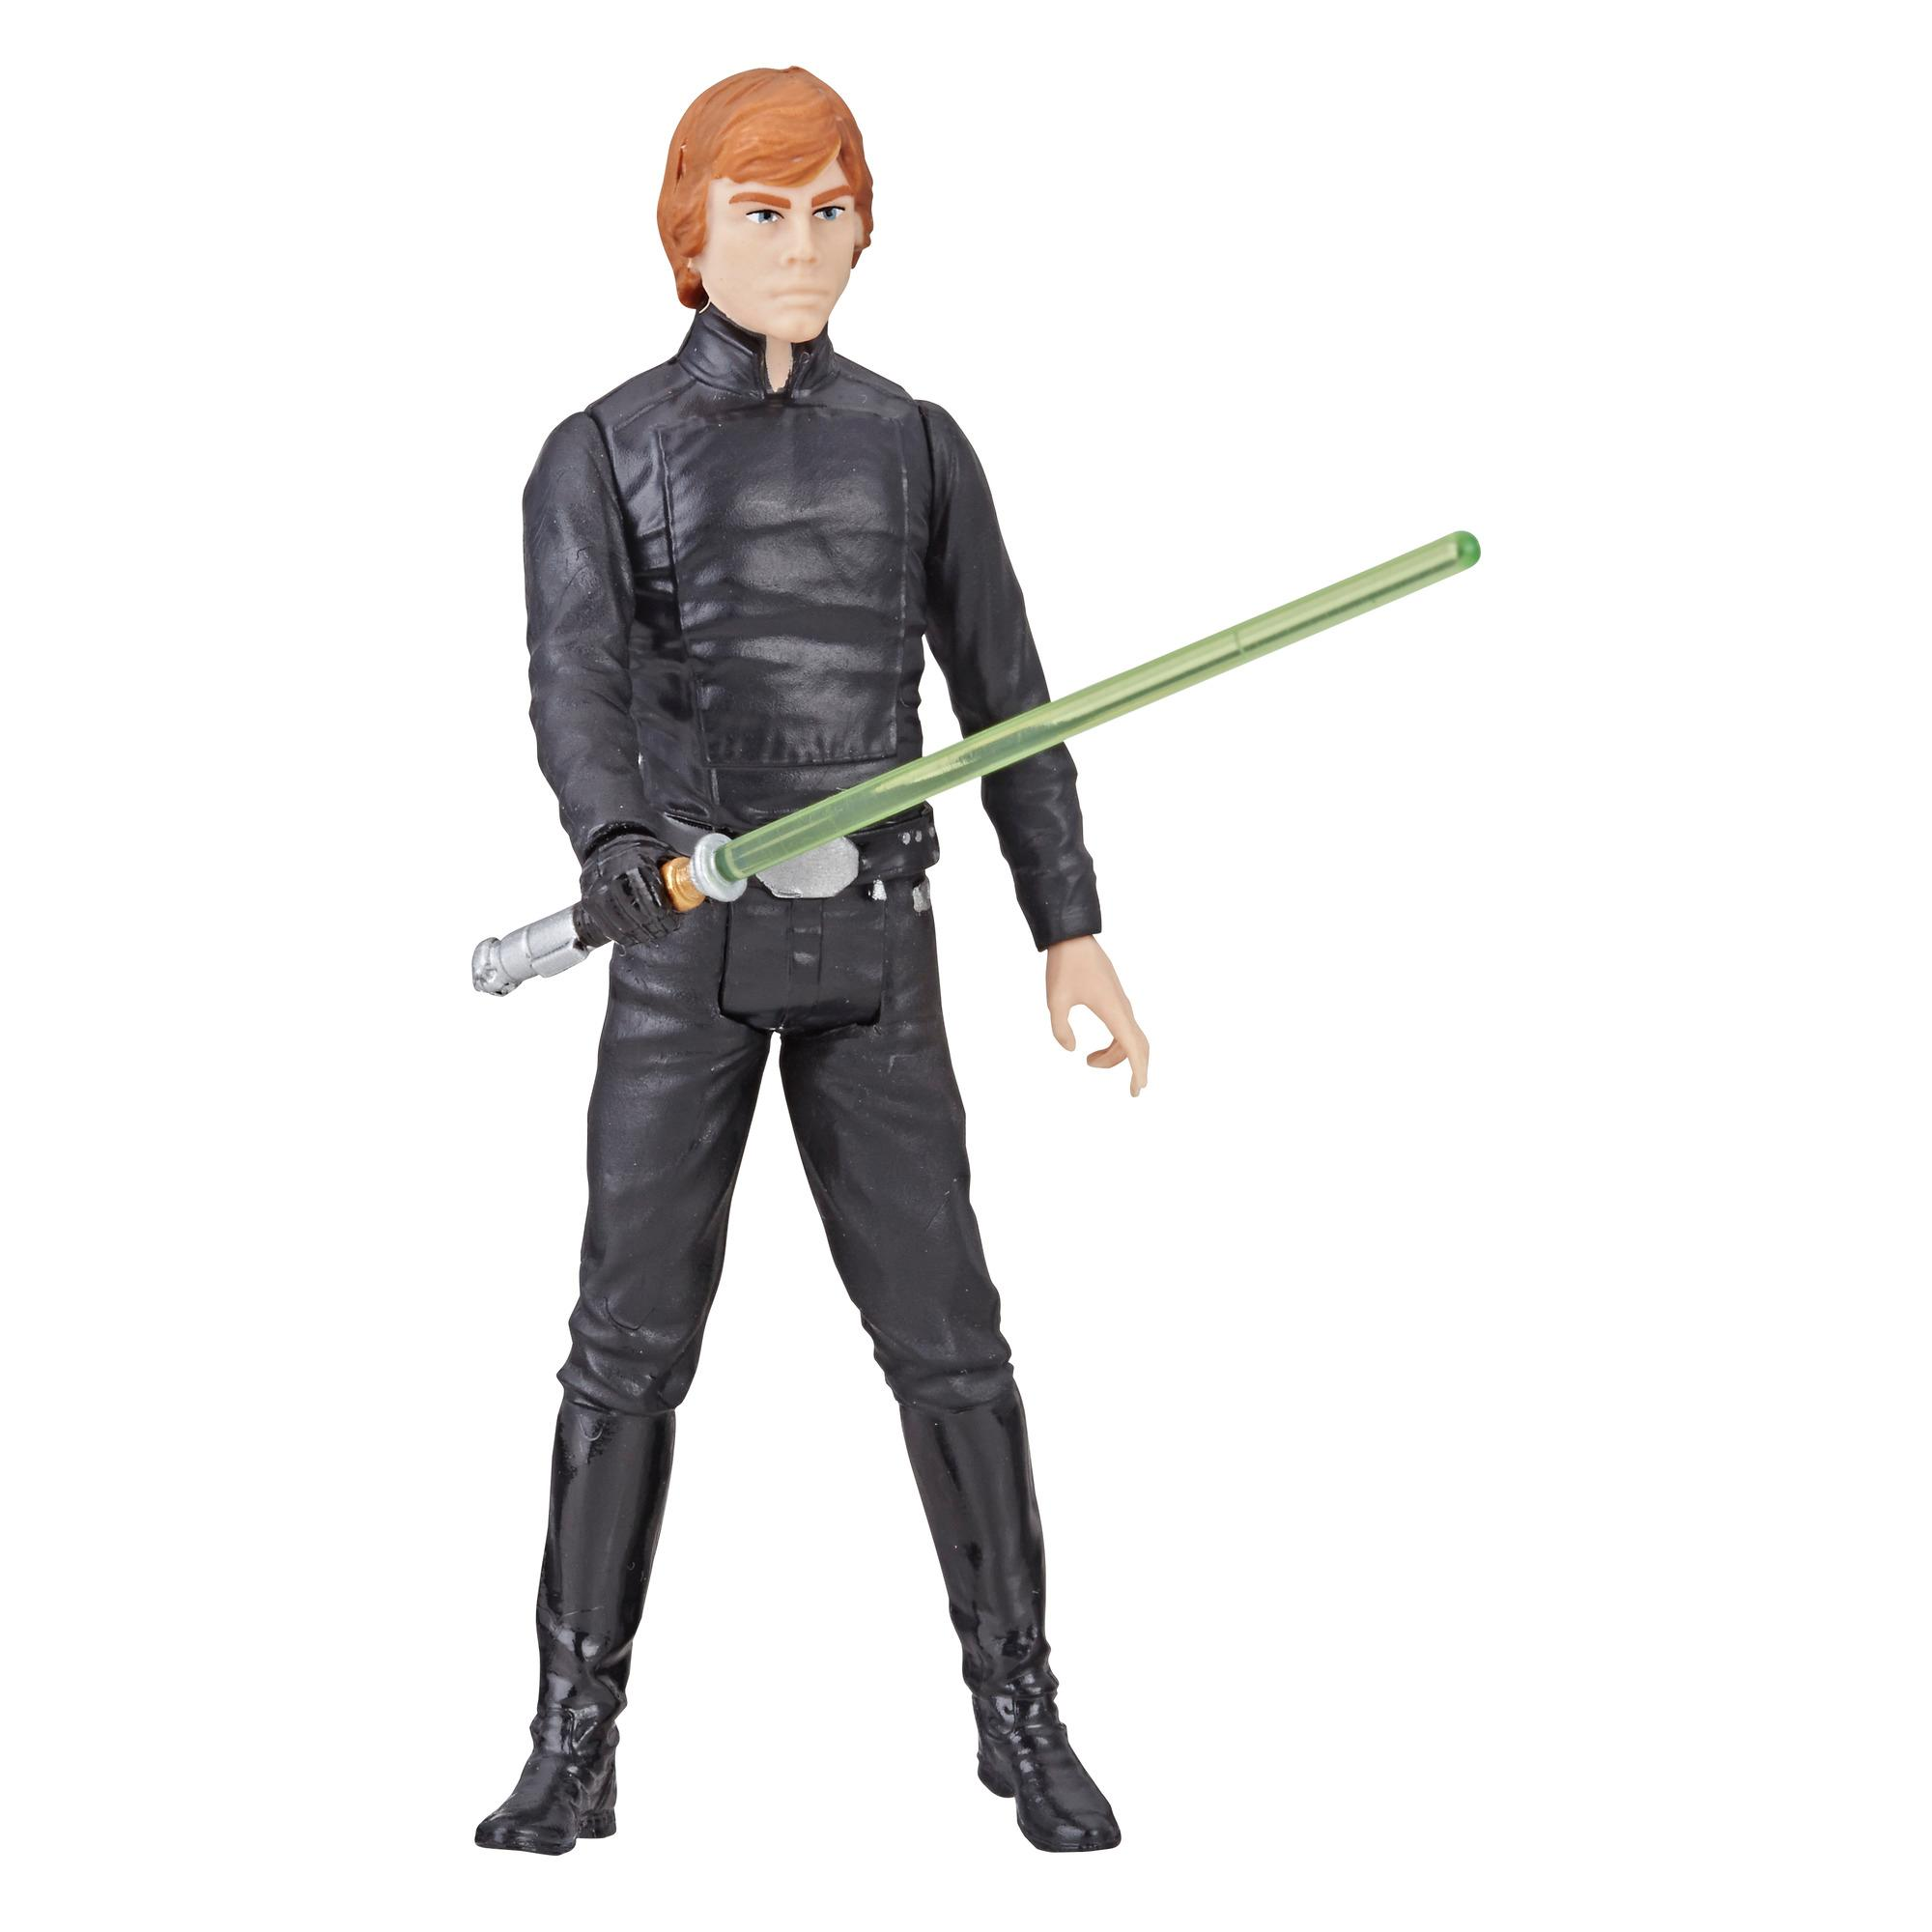 Star Wars Galaxy of Adventures Luke Skywalker Figure and Mini Comic